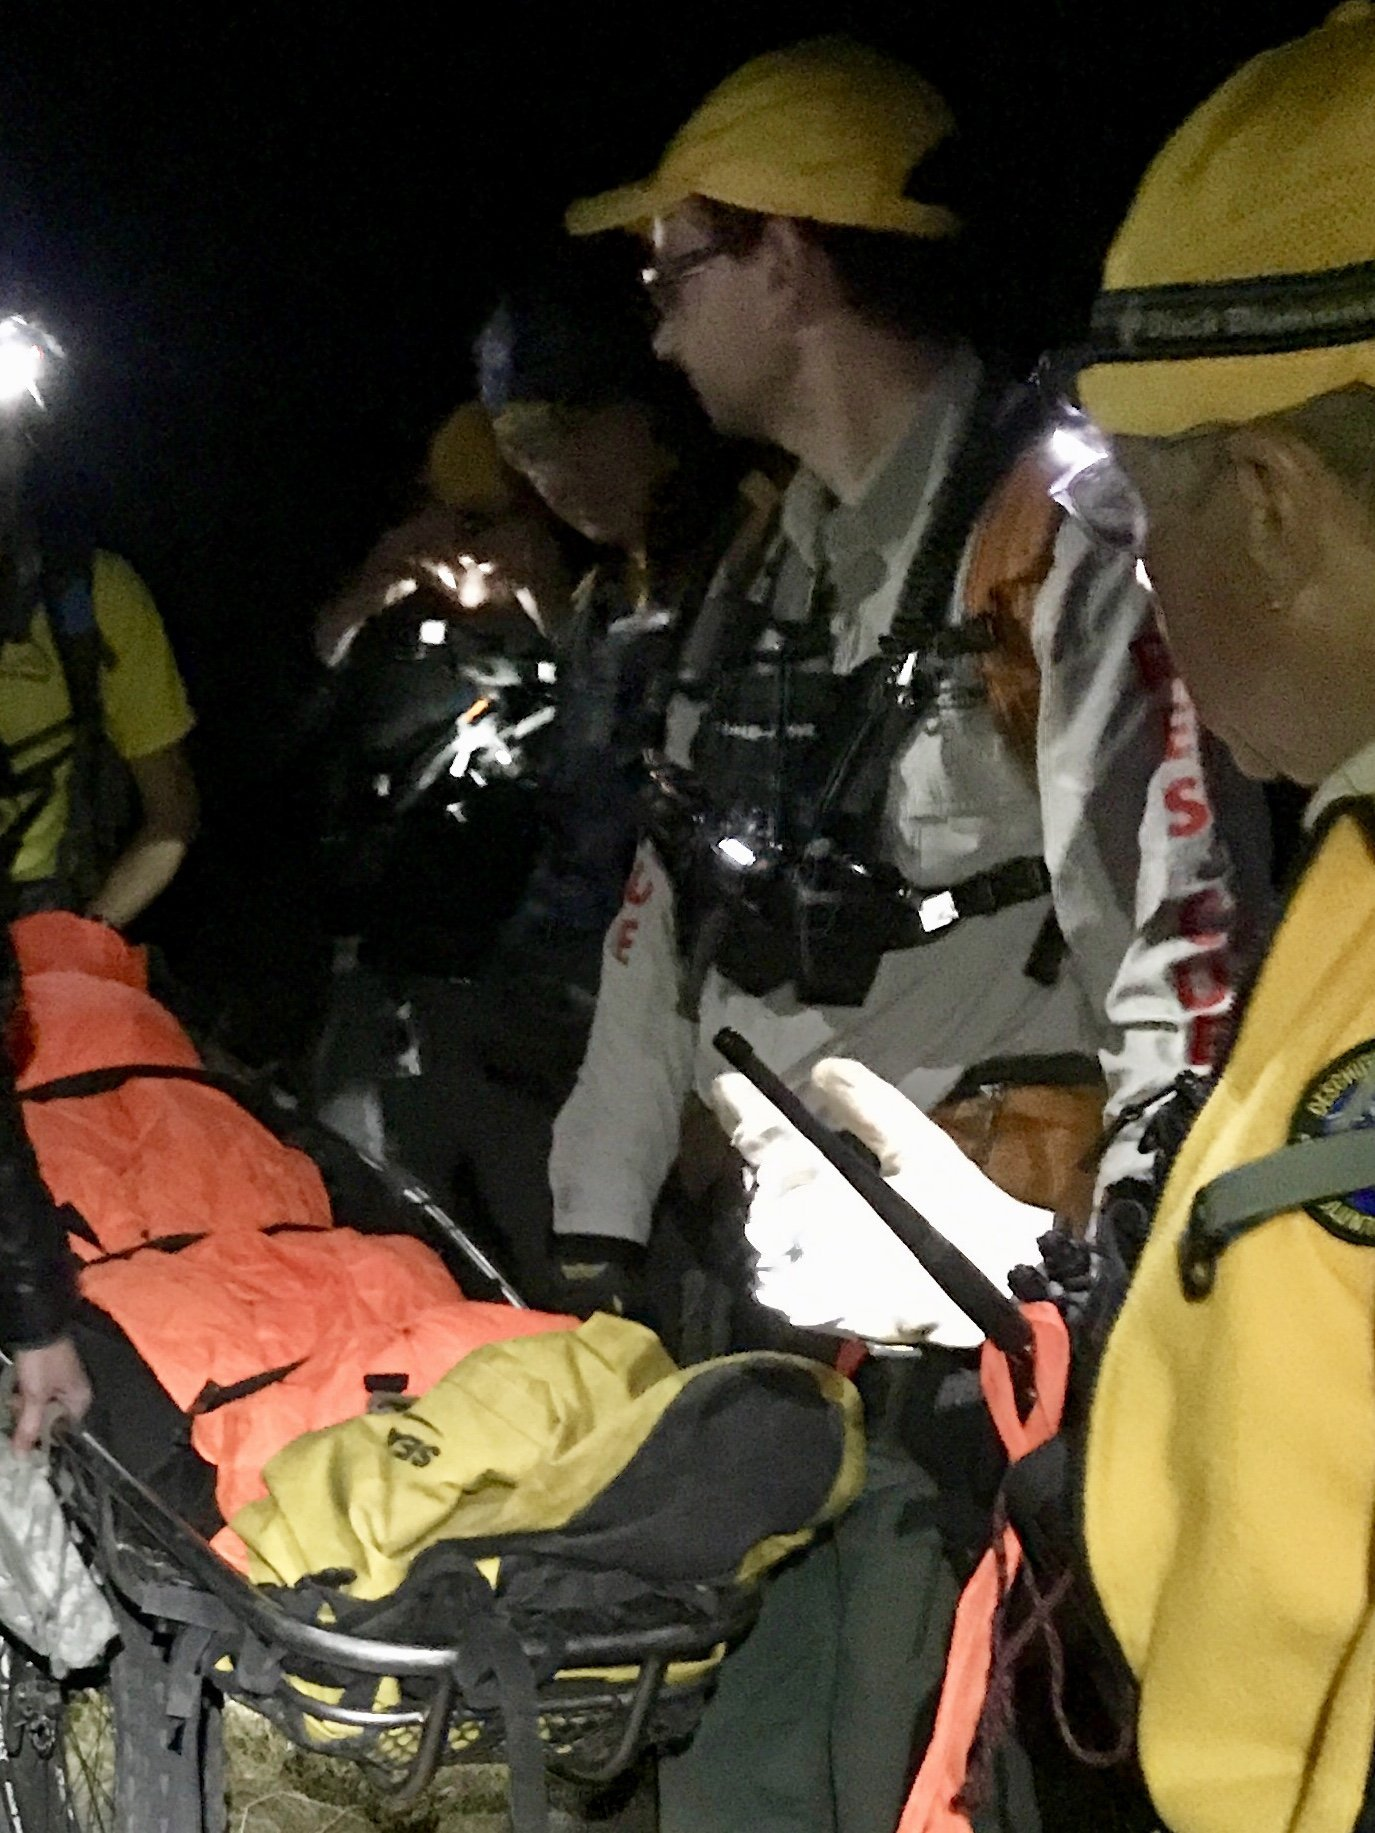 INJURED MOUNTAIN BIKER RESCUED NEAR SWAMPY LAKES SNOW PARK